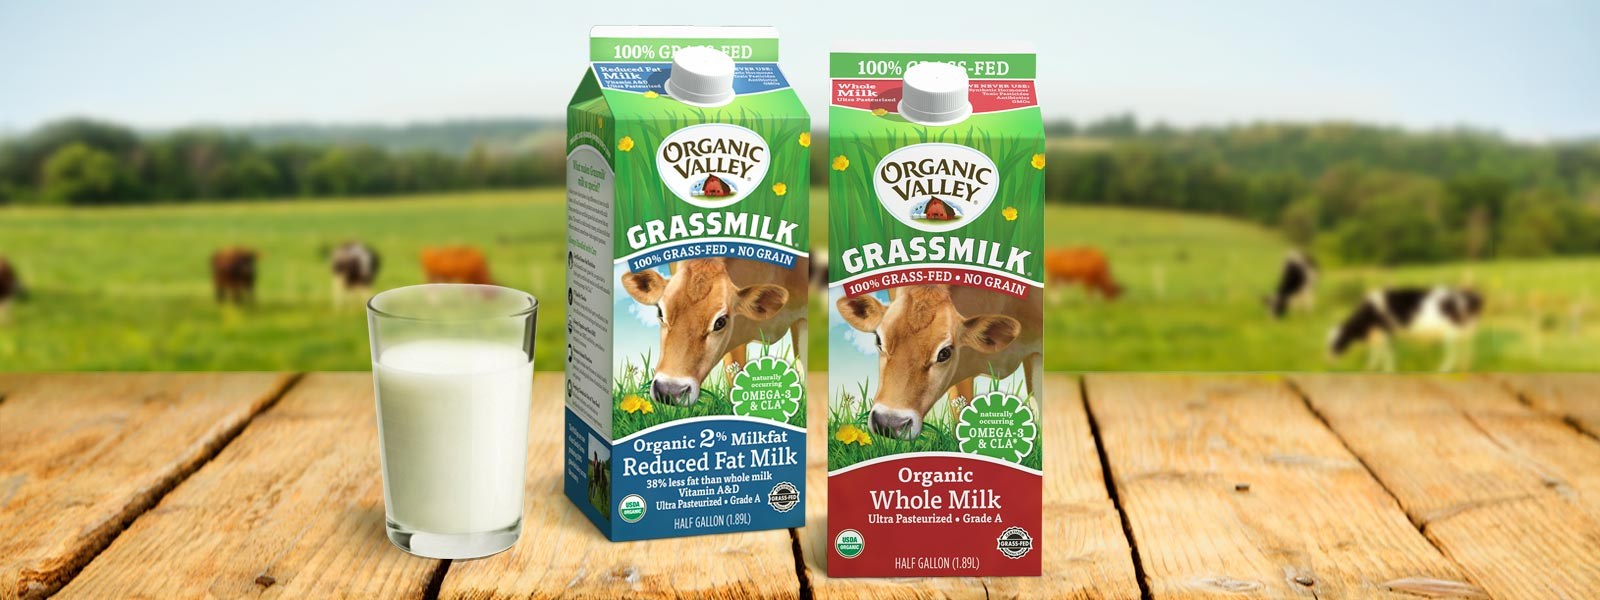 Two cartons of Organic Valley Grassmilk on an outdoor table.